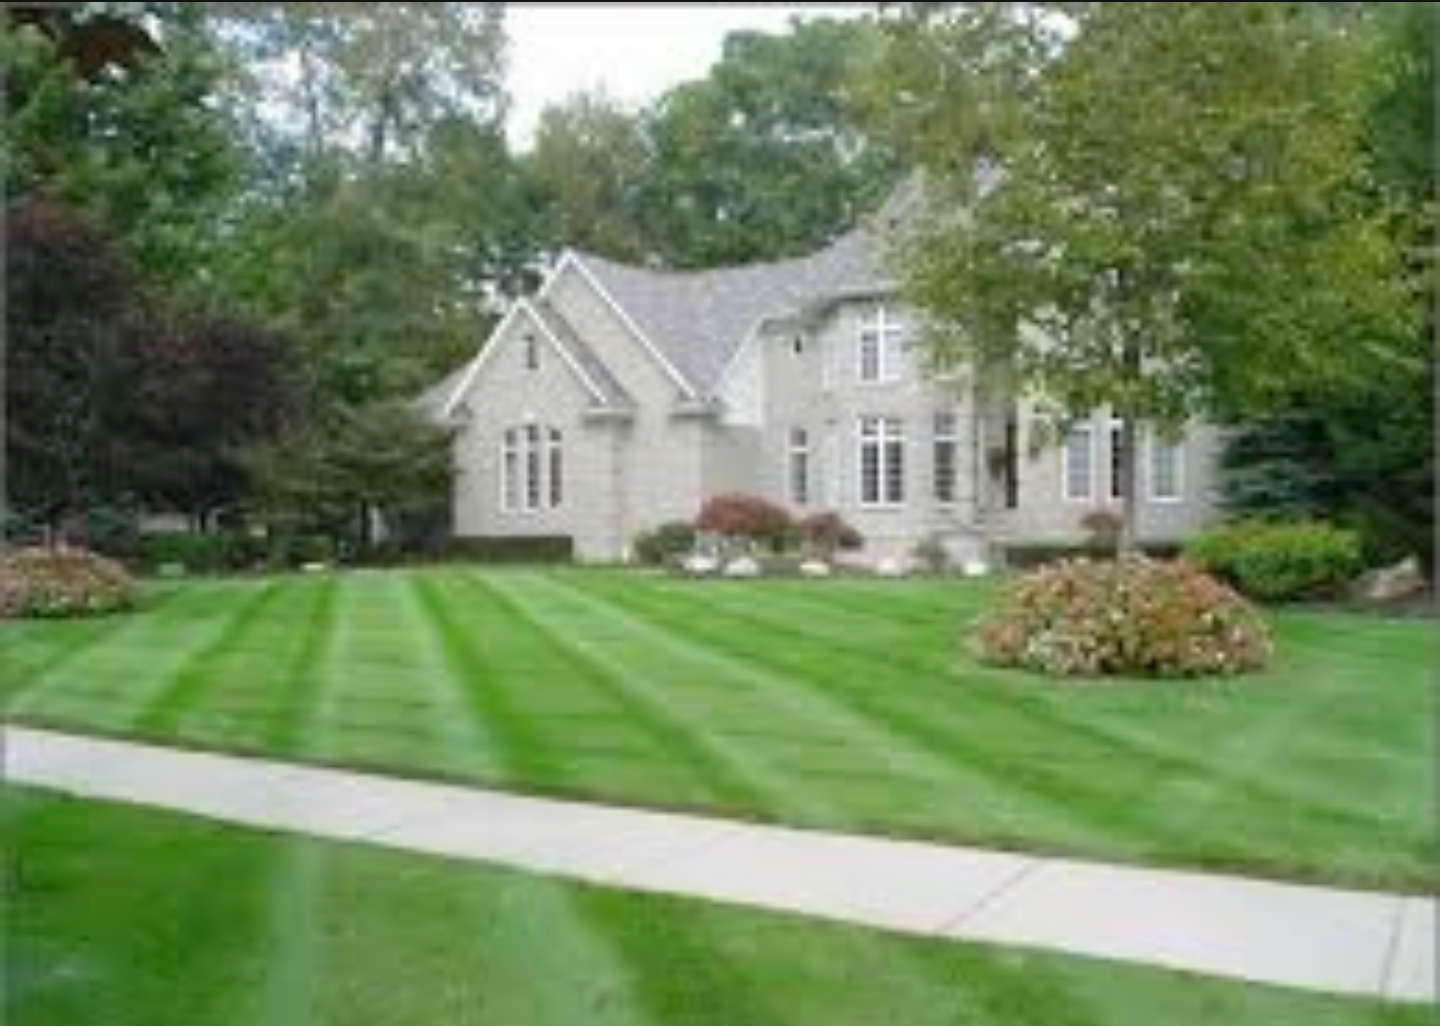 Yard mowing company in Tampa, FL, 33626